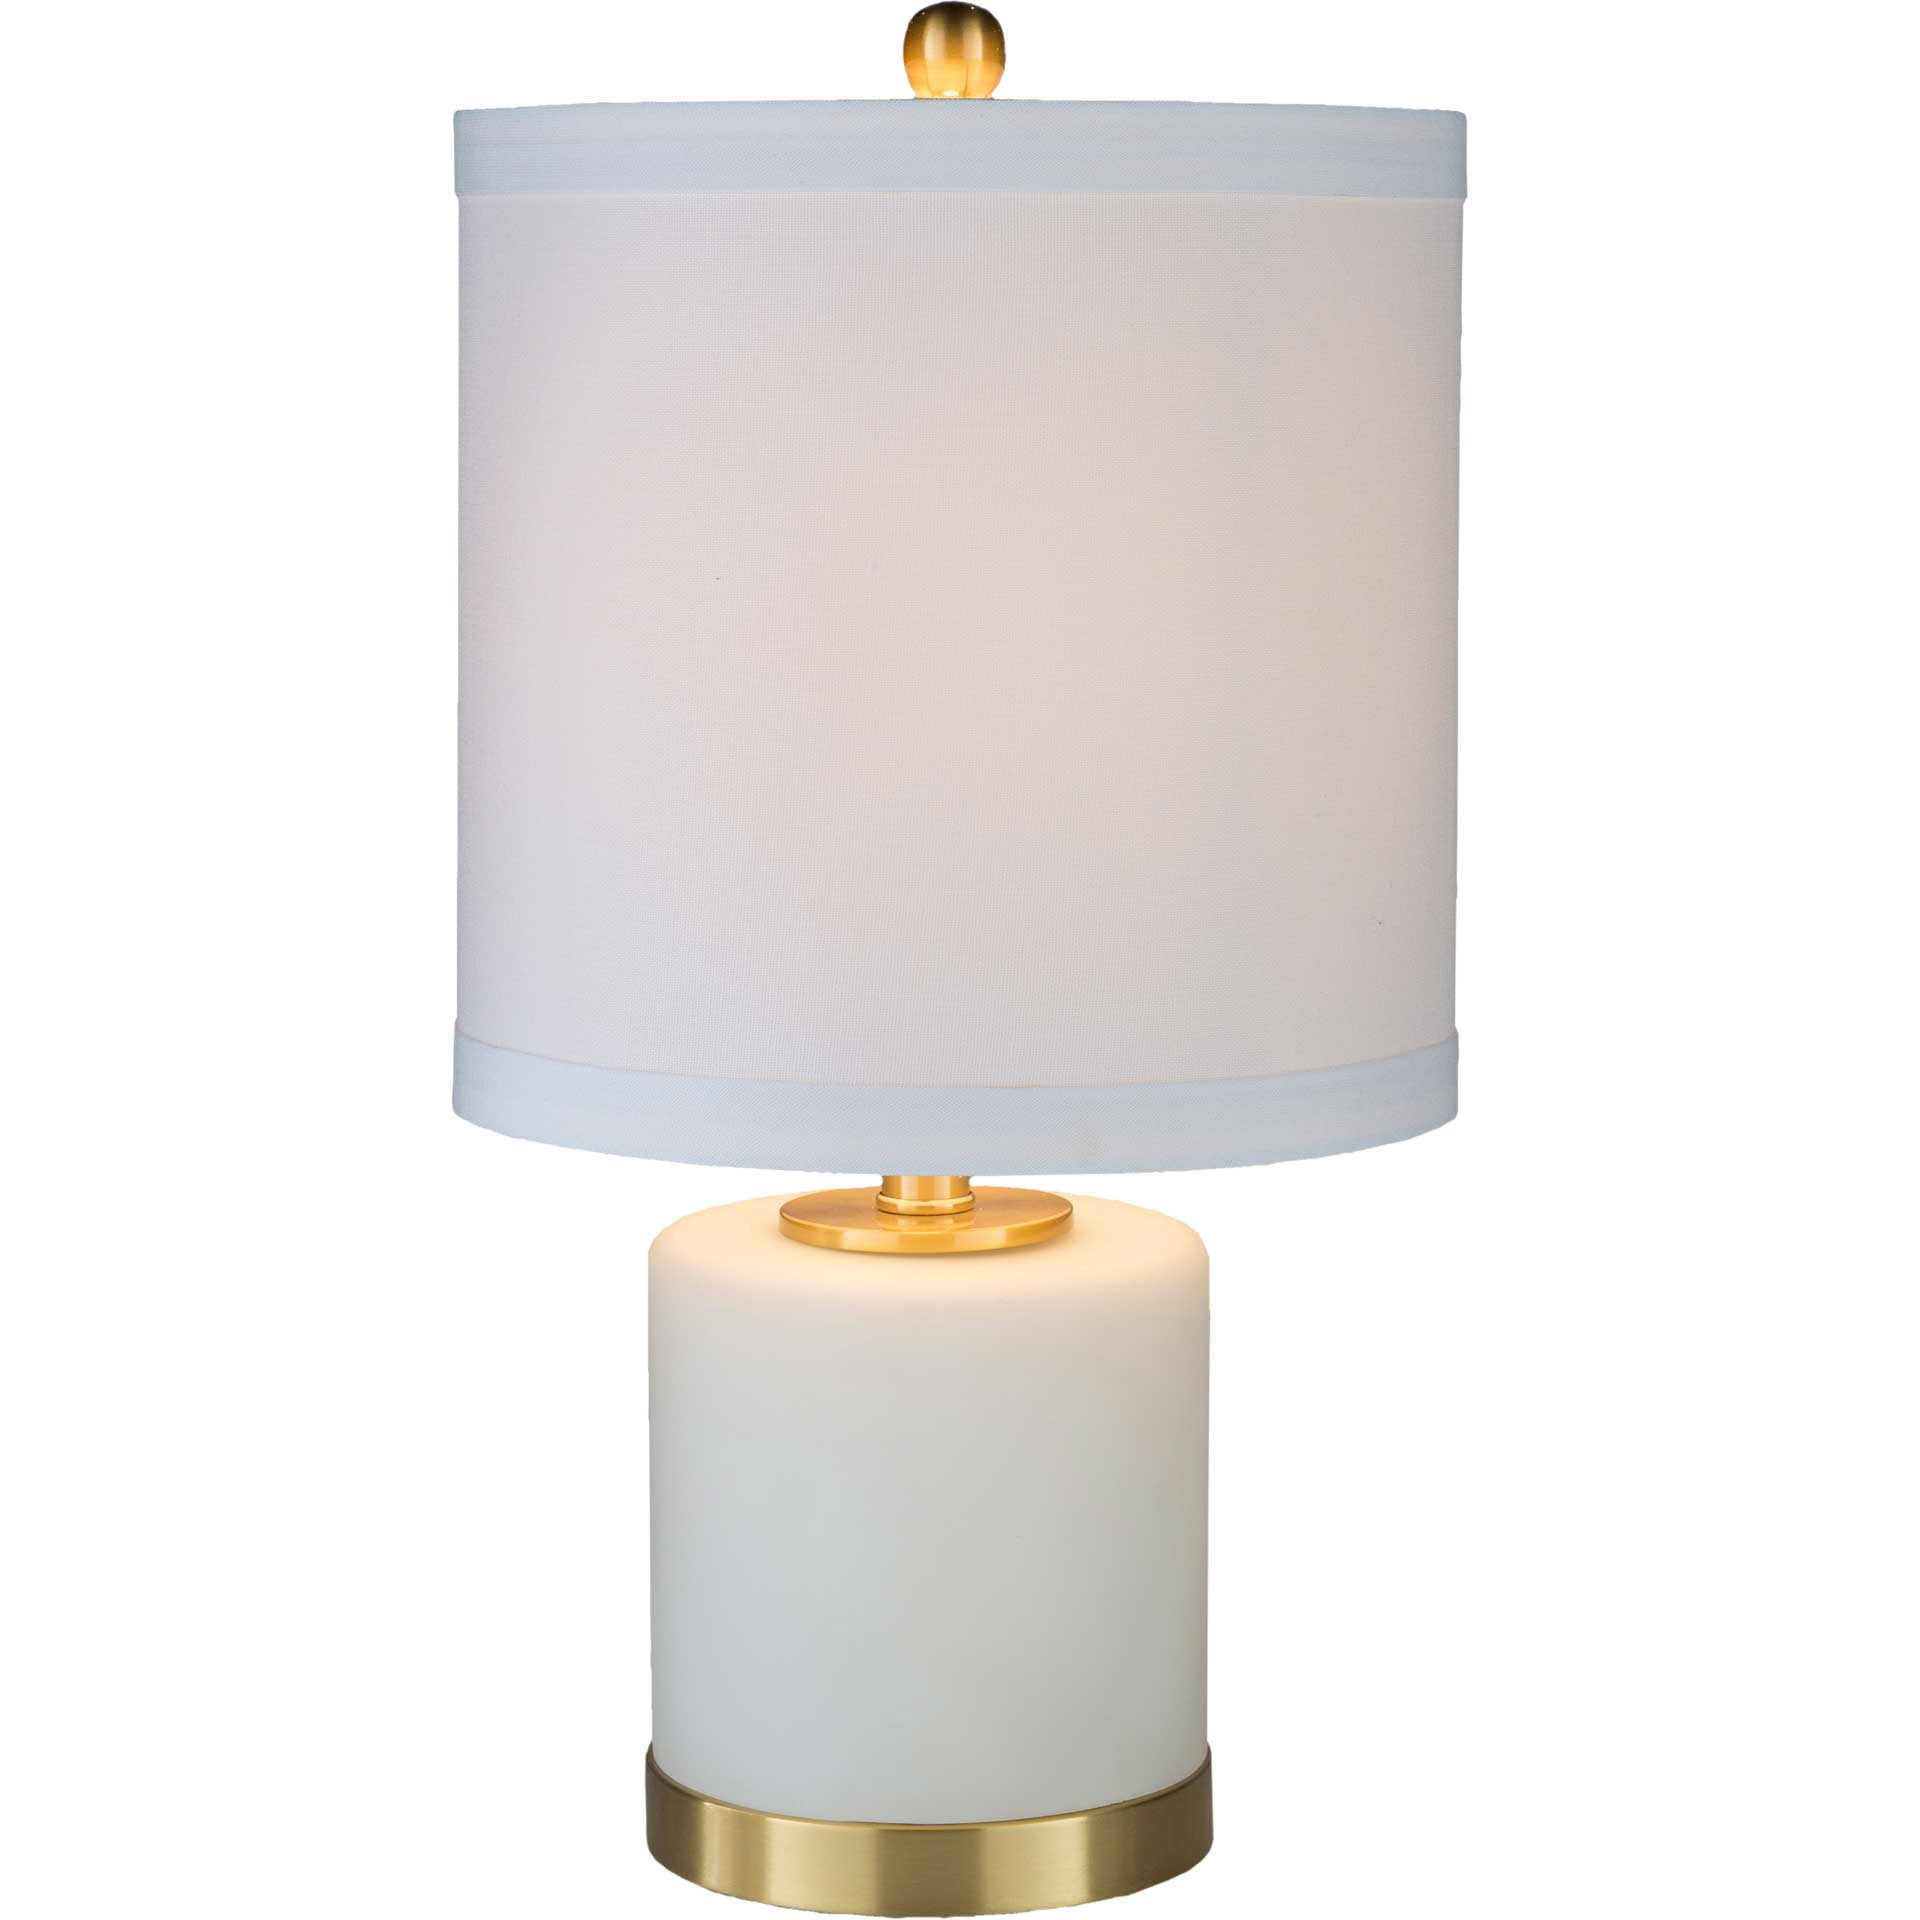 Ayaan Table Lamp White/Brass